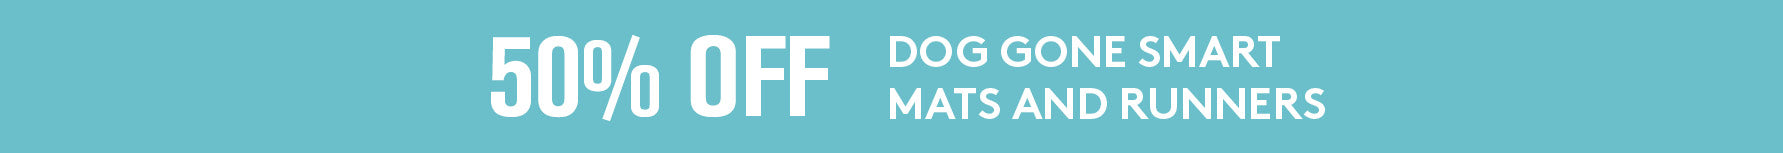 50% off on Dog Gone Smart Crate Mats and Runners